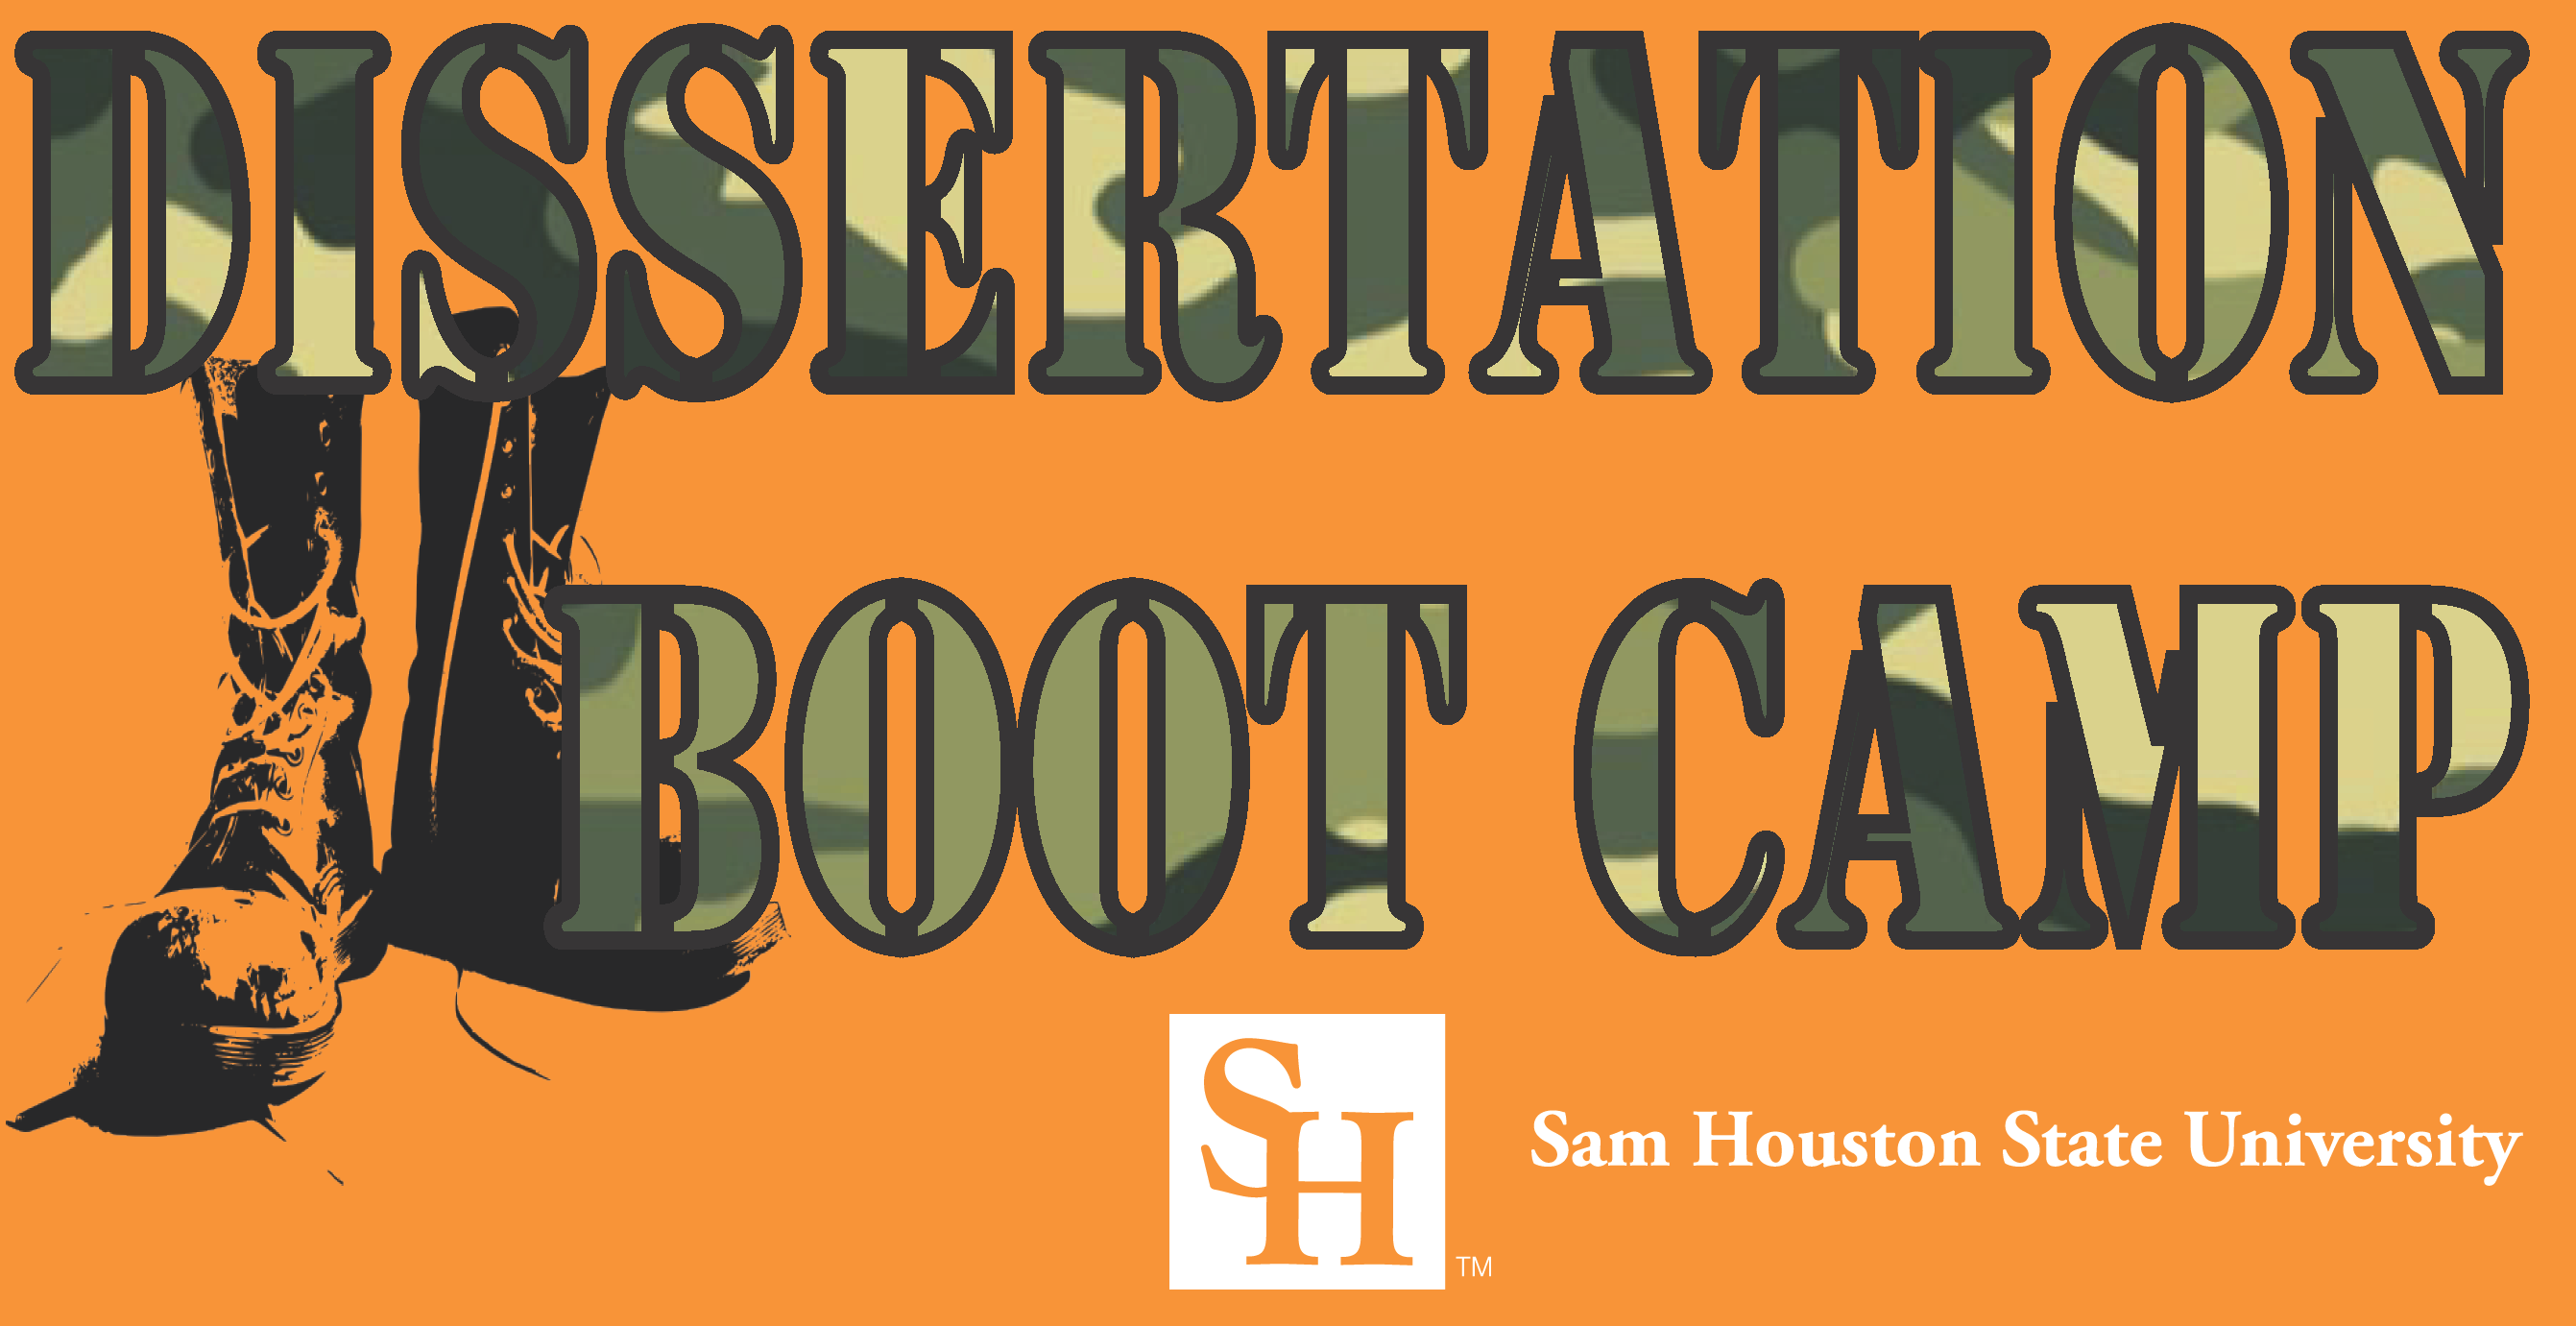 Dissertation Boot Camp SH Sam Houston State University